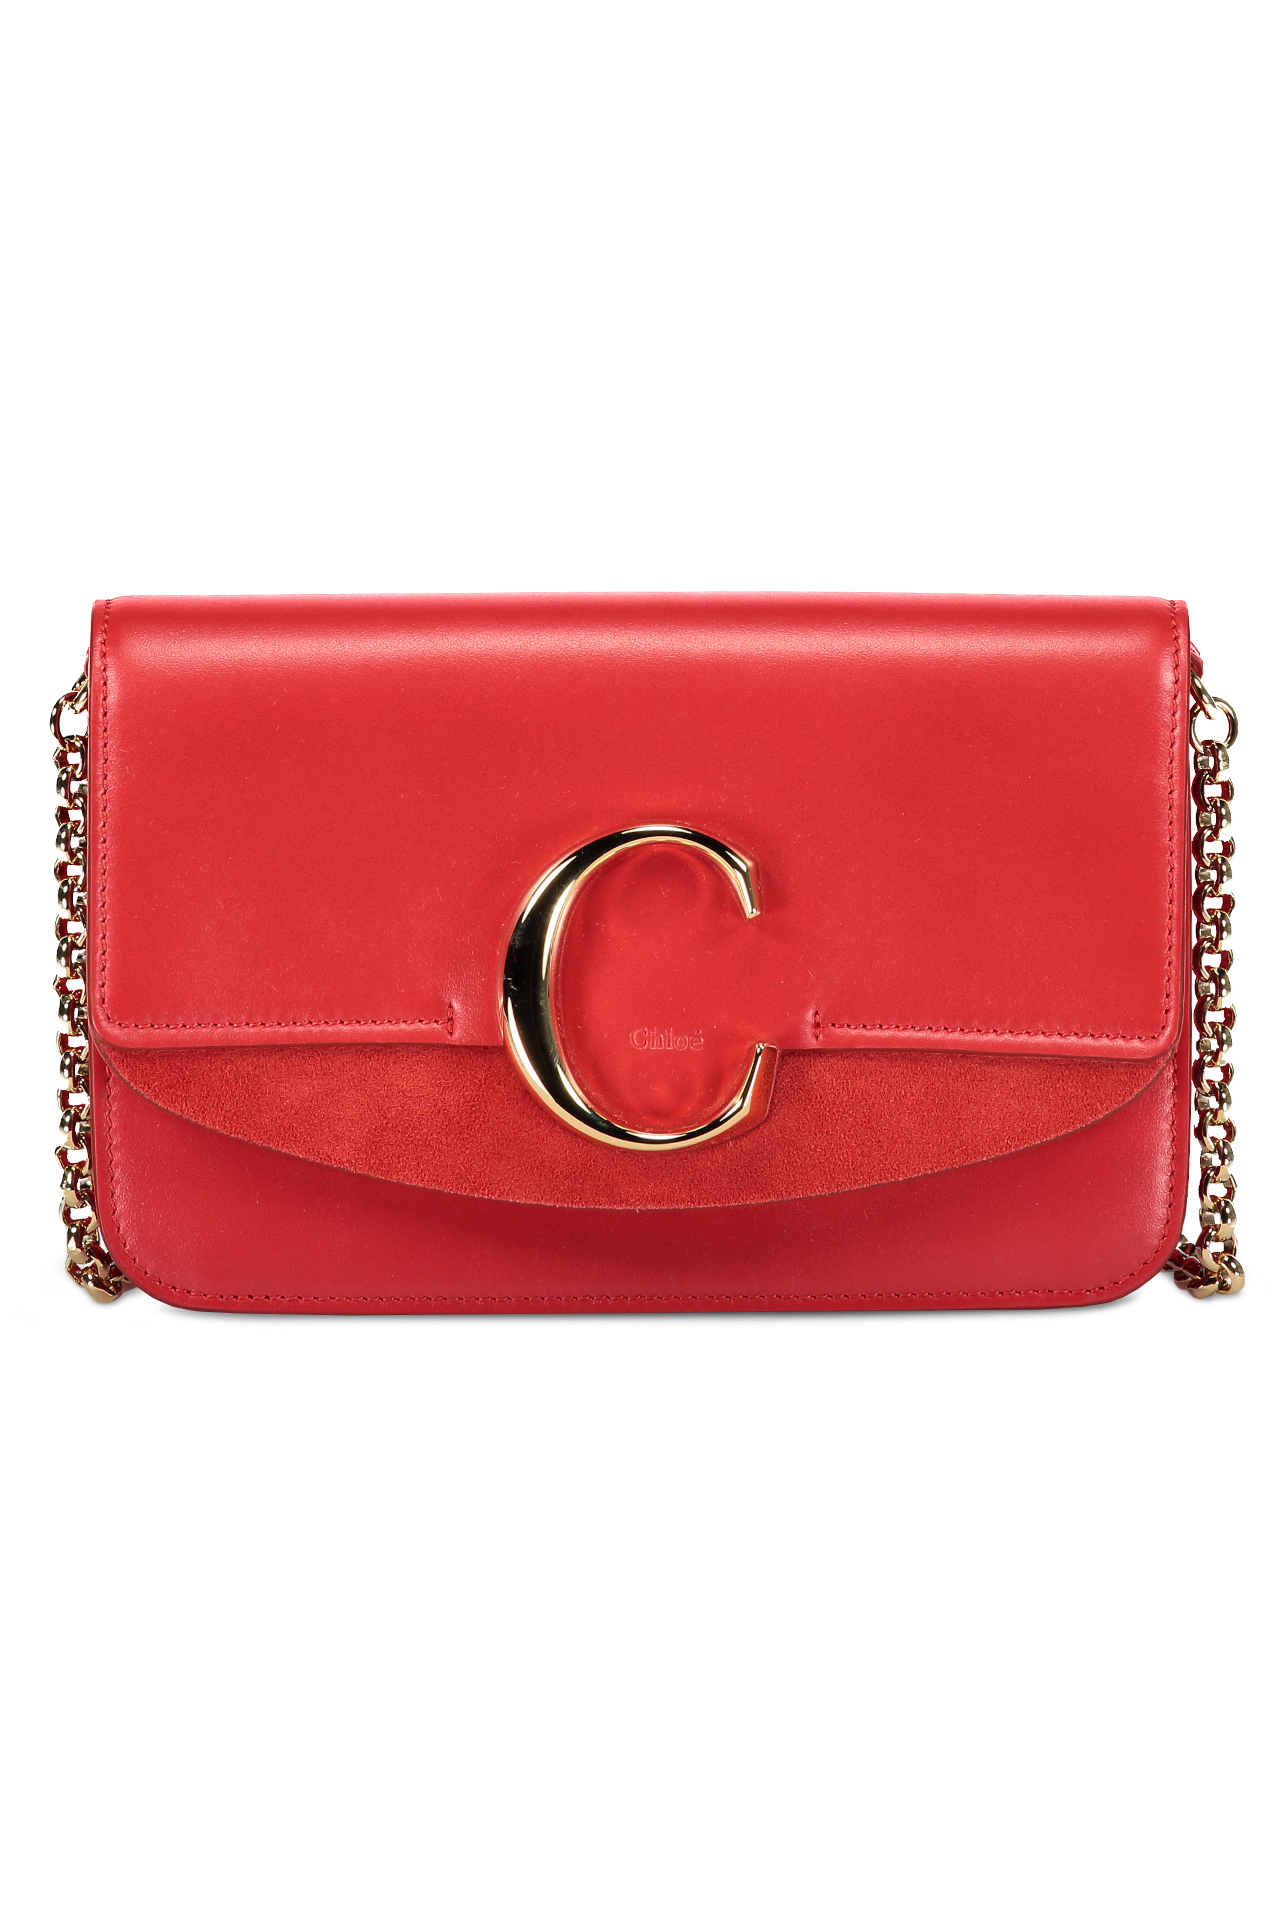 7656a89239 Chloé Chain Bag Plaid Red | Women's Bag | A.K. Rikk's